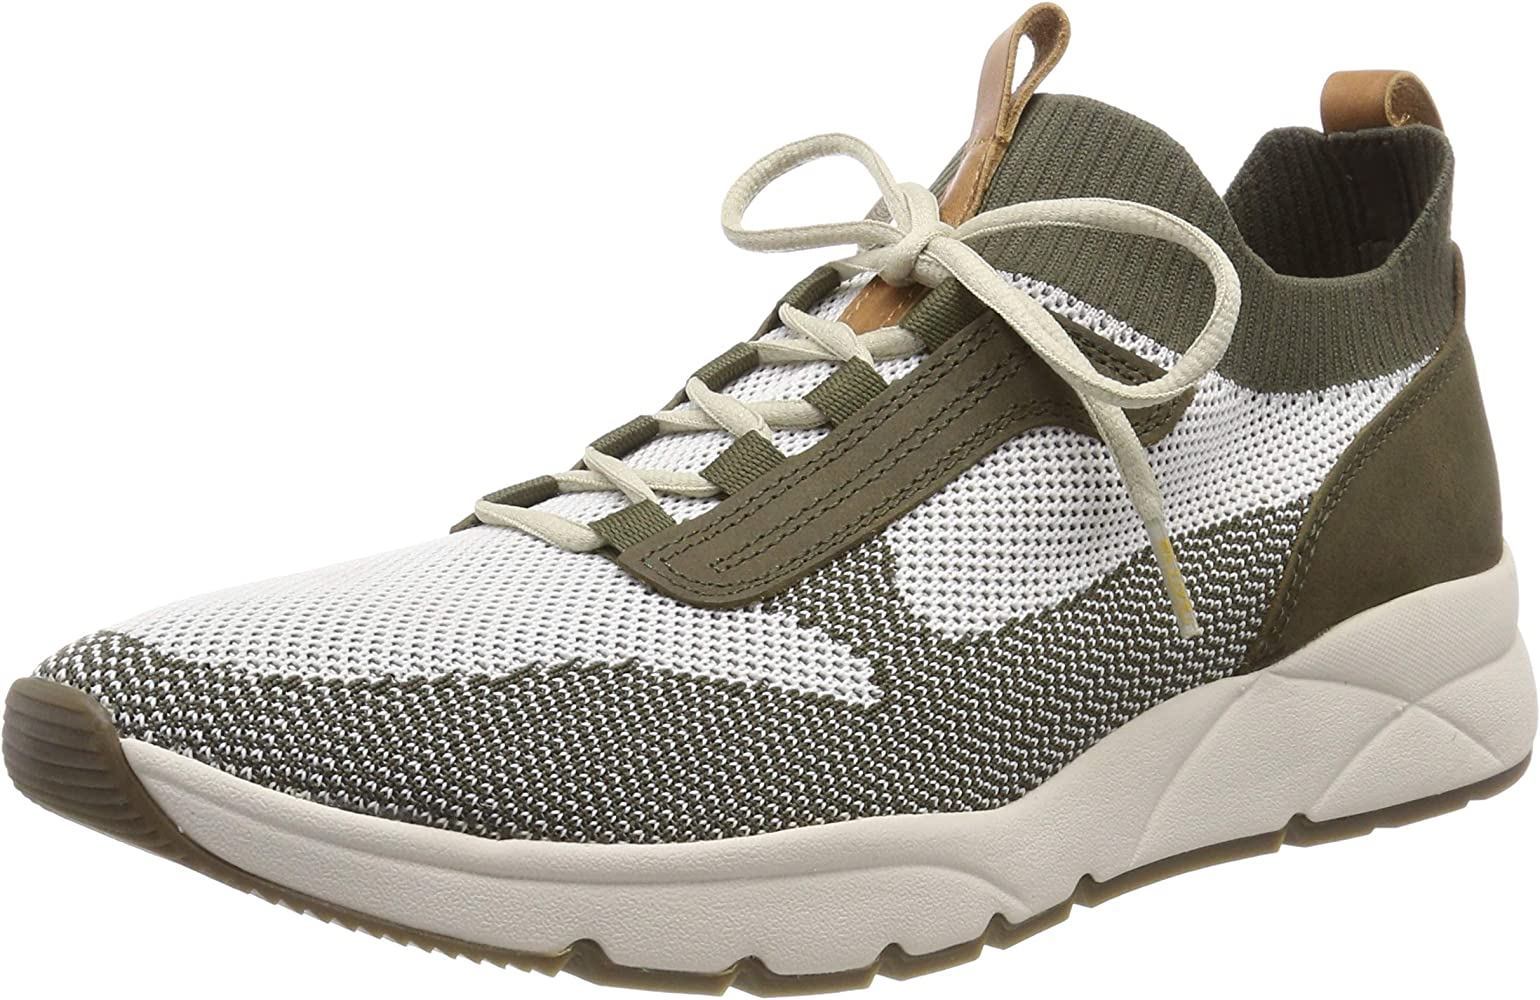 camel active Men's Run 12 Low Top Sneakers, (Off WhiteOlive